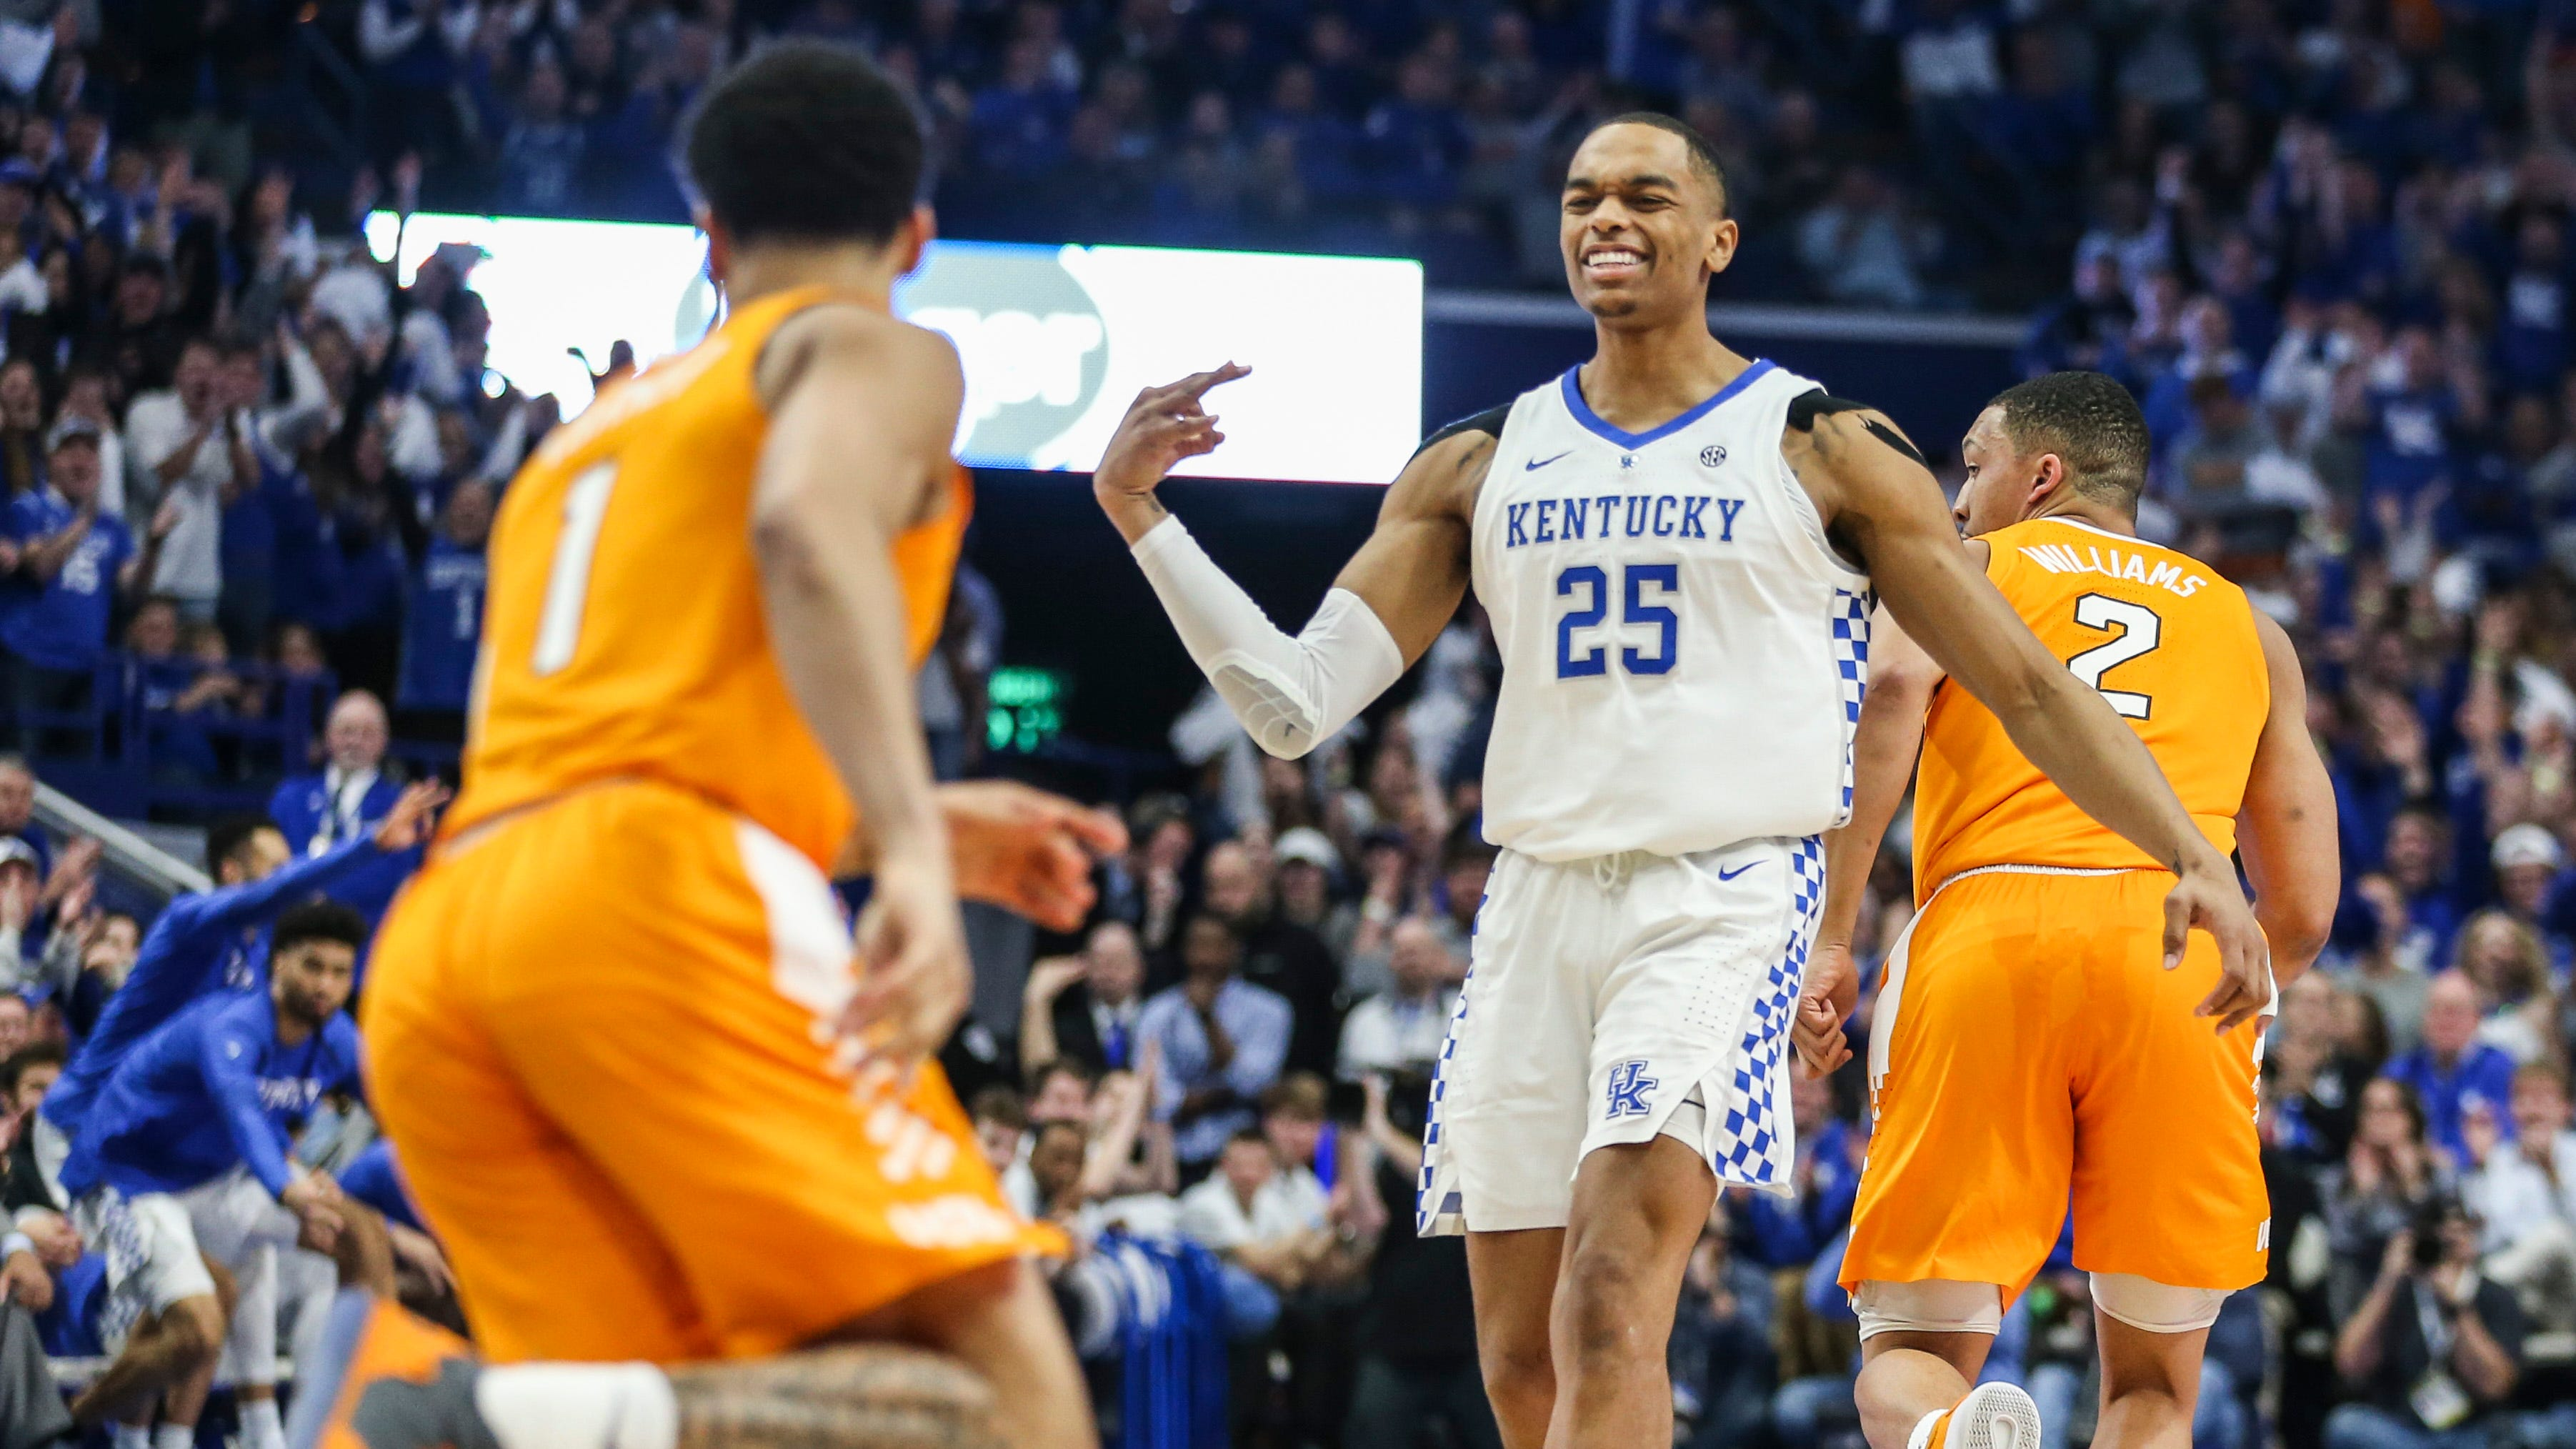 Uk Basketball: Kentucky Basketball: Takeaways From UK Win Over Tennessee